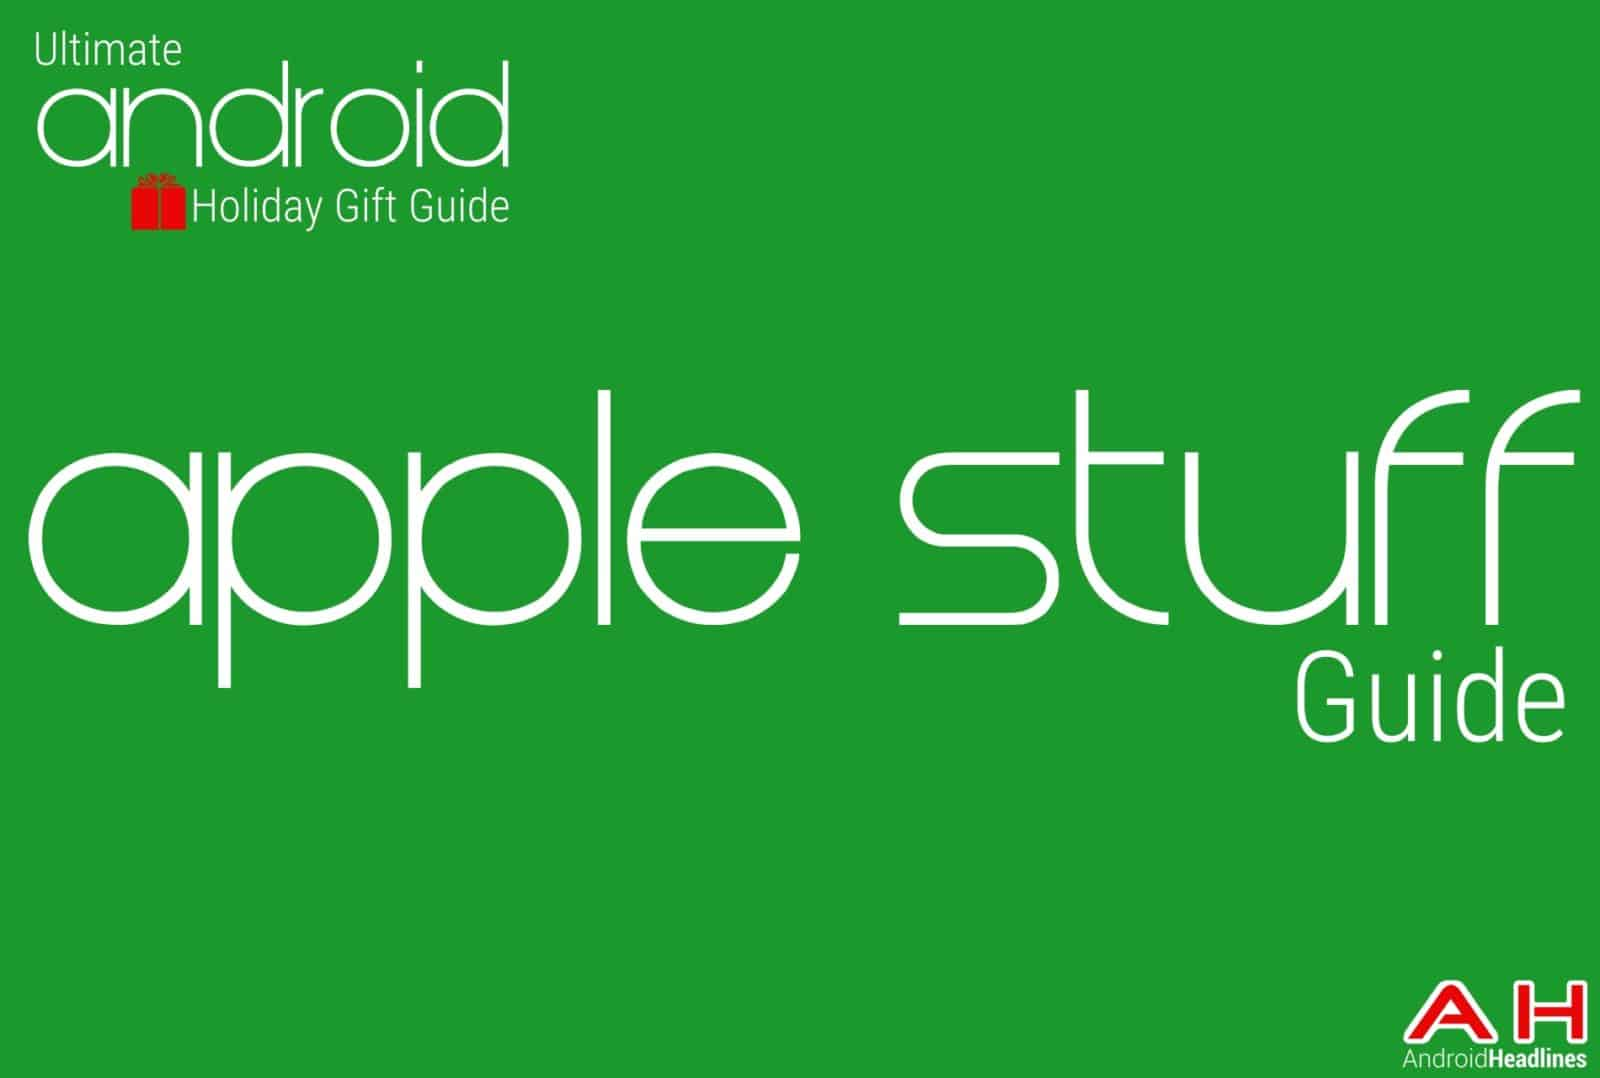 Best Apple stuff Guide - Android Holiday Gift Guide Top 10